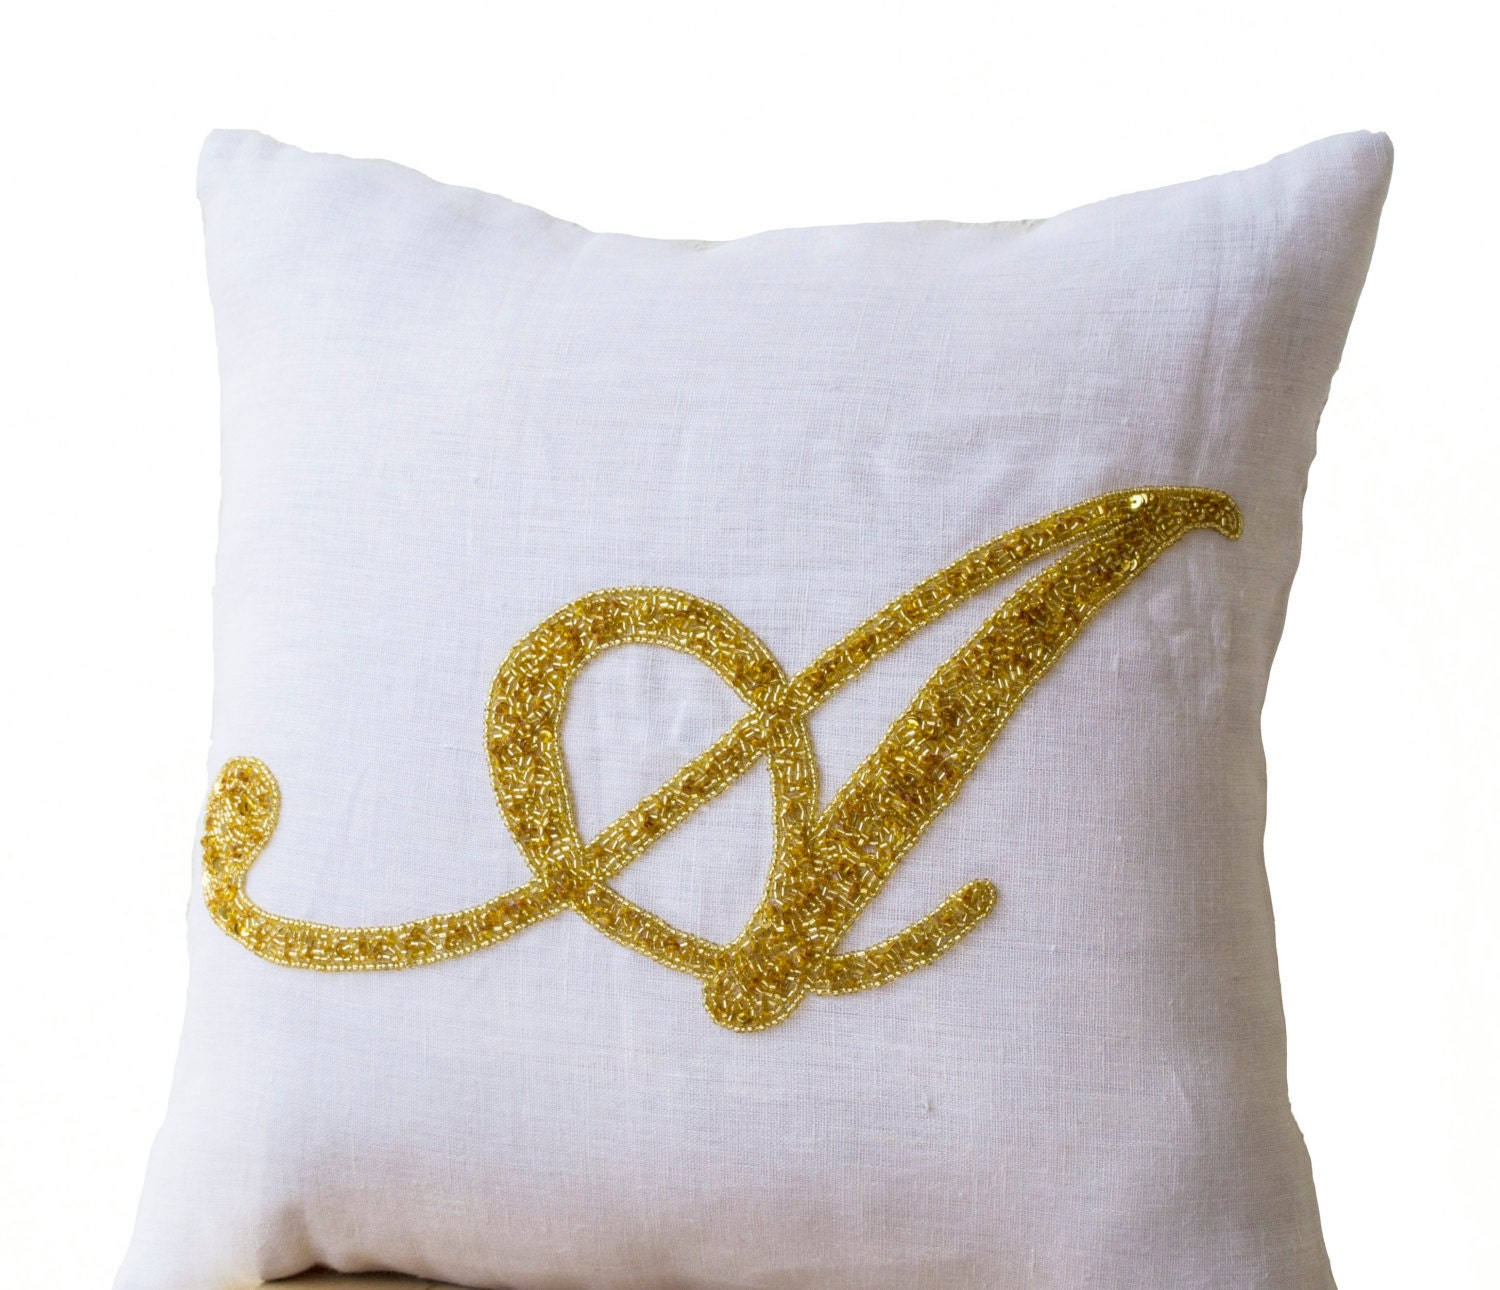 Decorative pillow Customized monogram pillow Gold by AmoreBeaute